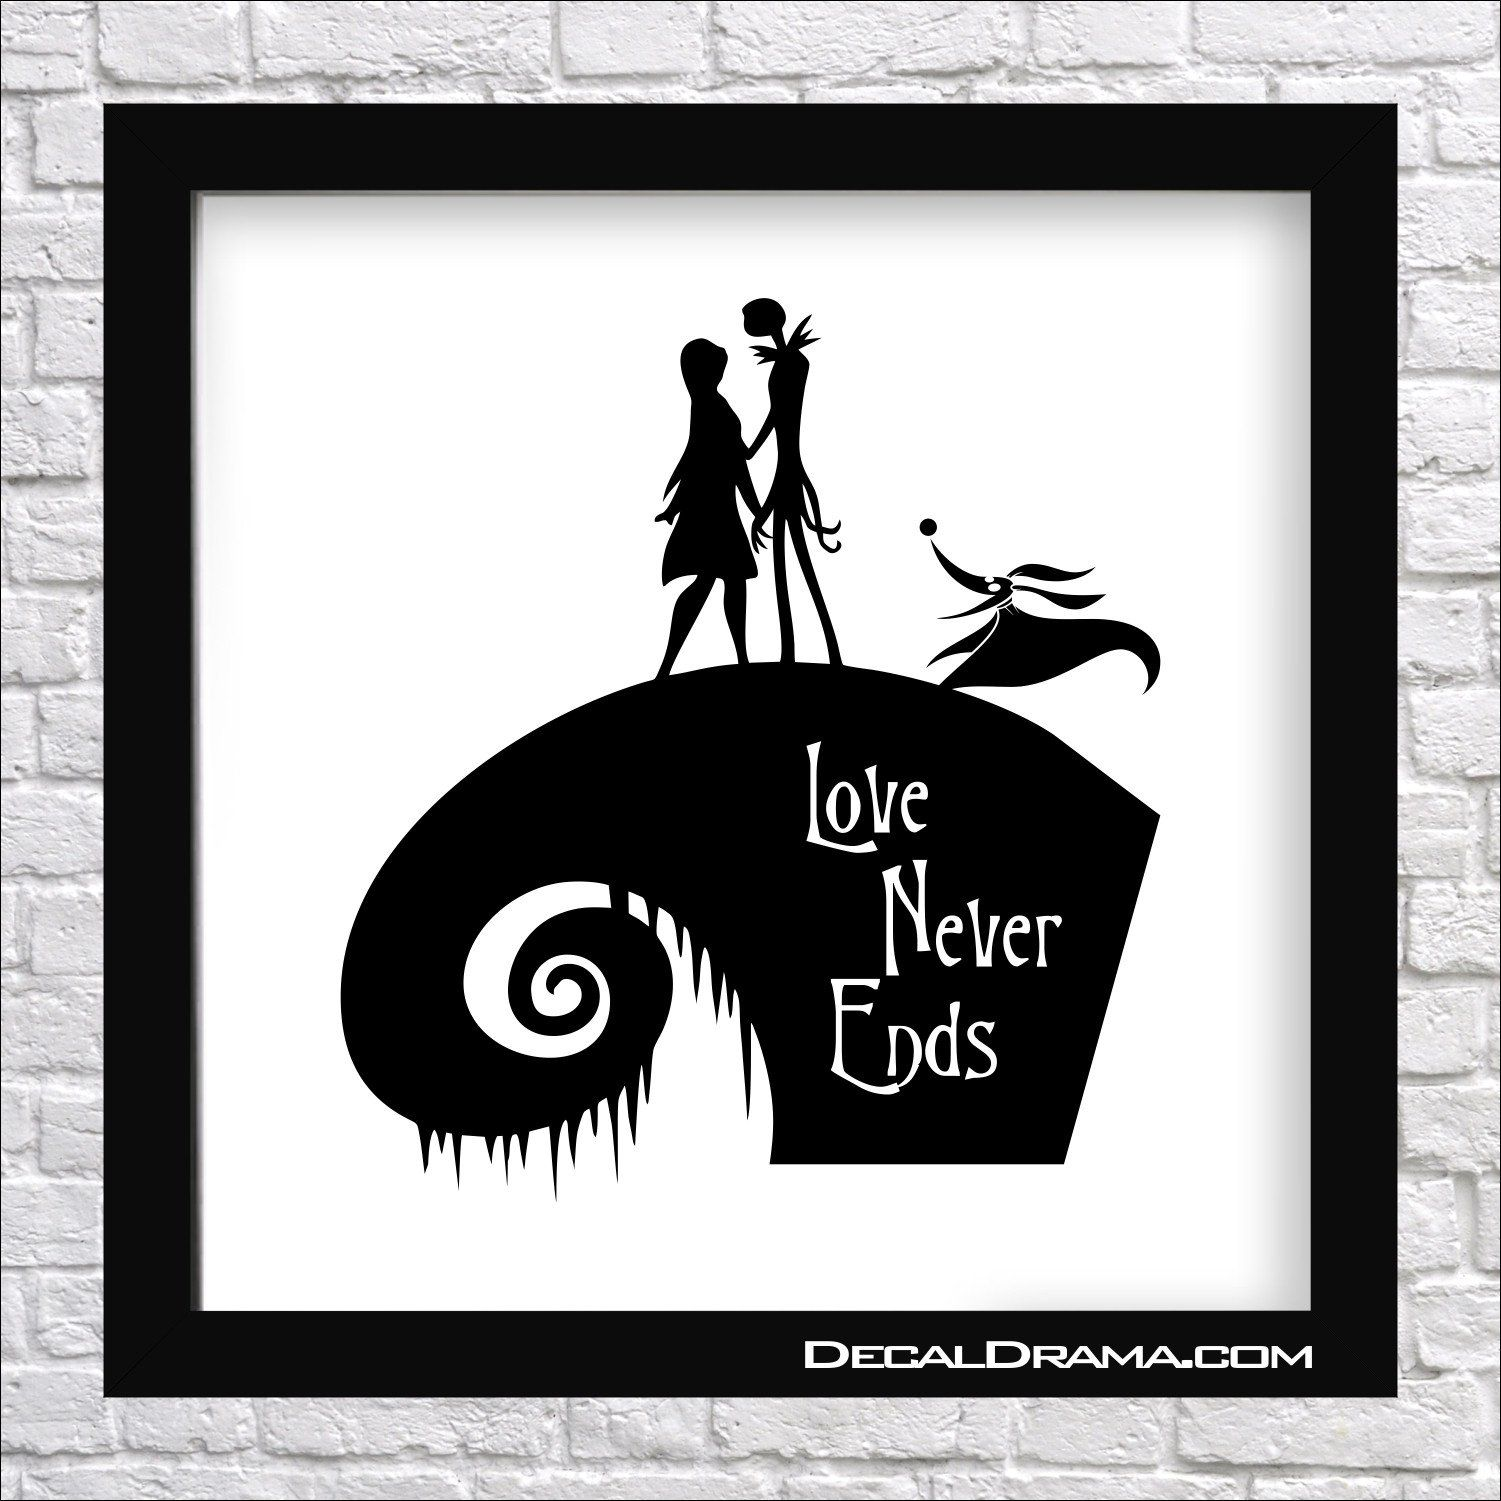 """Nightmare Before Christmas-inspired Fan Art: Love Never Ends, with Jack Skellington & Sally & Zero Jack Skellington, Sally, Disney-inspired Fan Art Vinyl Car/Laptop Decal, Nightmare Before Christmas, NBC, Tim Burton, Sally, Santi Claws, Oogie Boogie, Zero, Pumpkin King; vinyl decal measures 6""""w x 6-5/8""""h (15.2cm x 16.8cm) ★★★ This order is for the vinyl wall decal only. ★★★ Please CHOOSE you vinyl color from the pull-down menu (check the last picture for our 20 color options). ★★★ Pictur"""